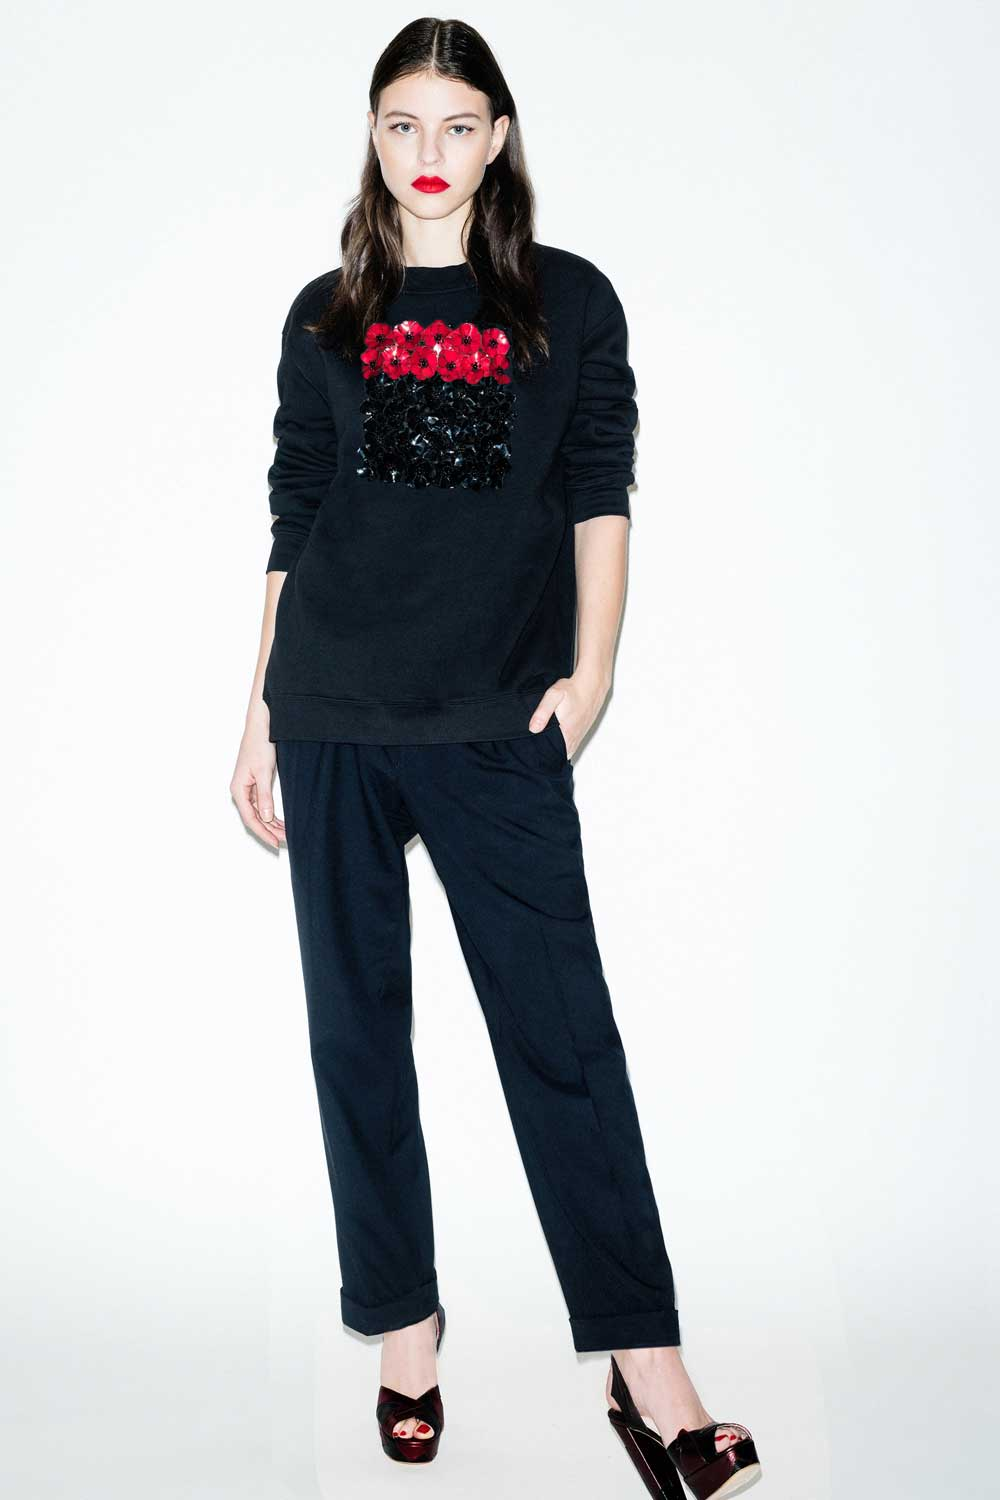 fflag-sweatshirt-poppies--ornement-fleurs-sequins-bicolore2